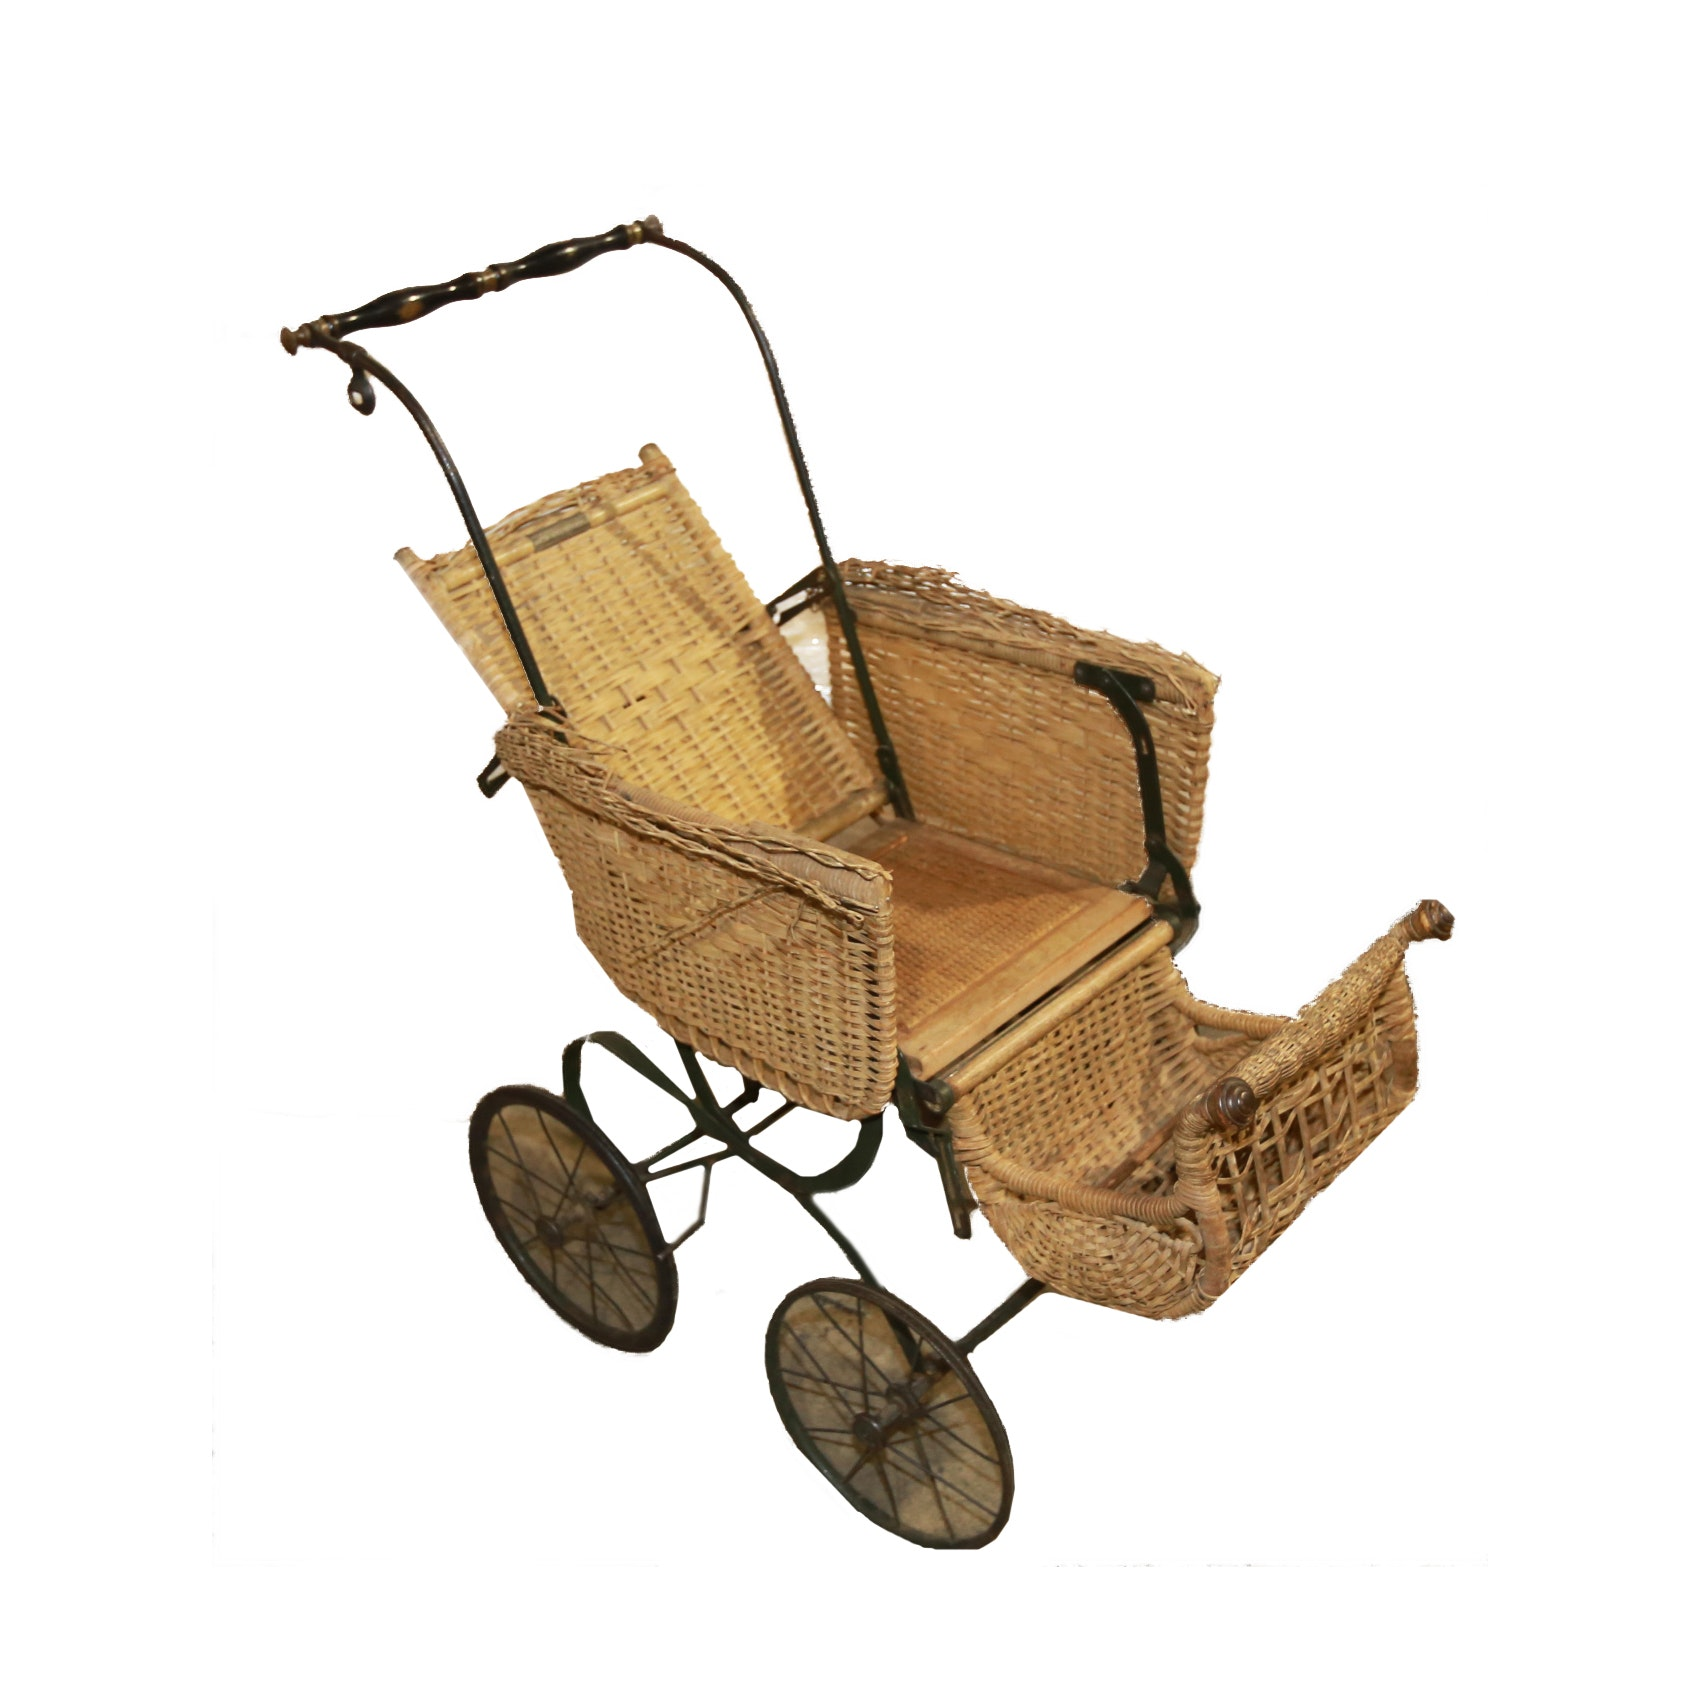 Antique H.N. Thayer Co. Decorative Wicker Baby Carriage